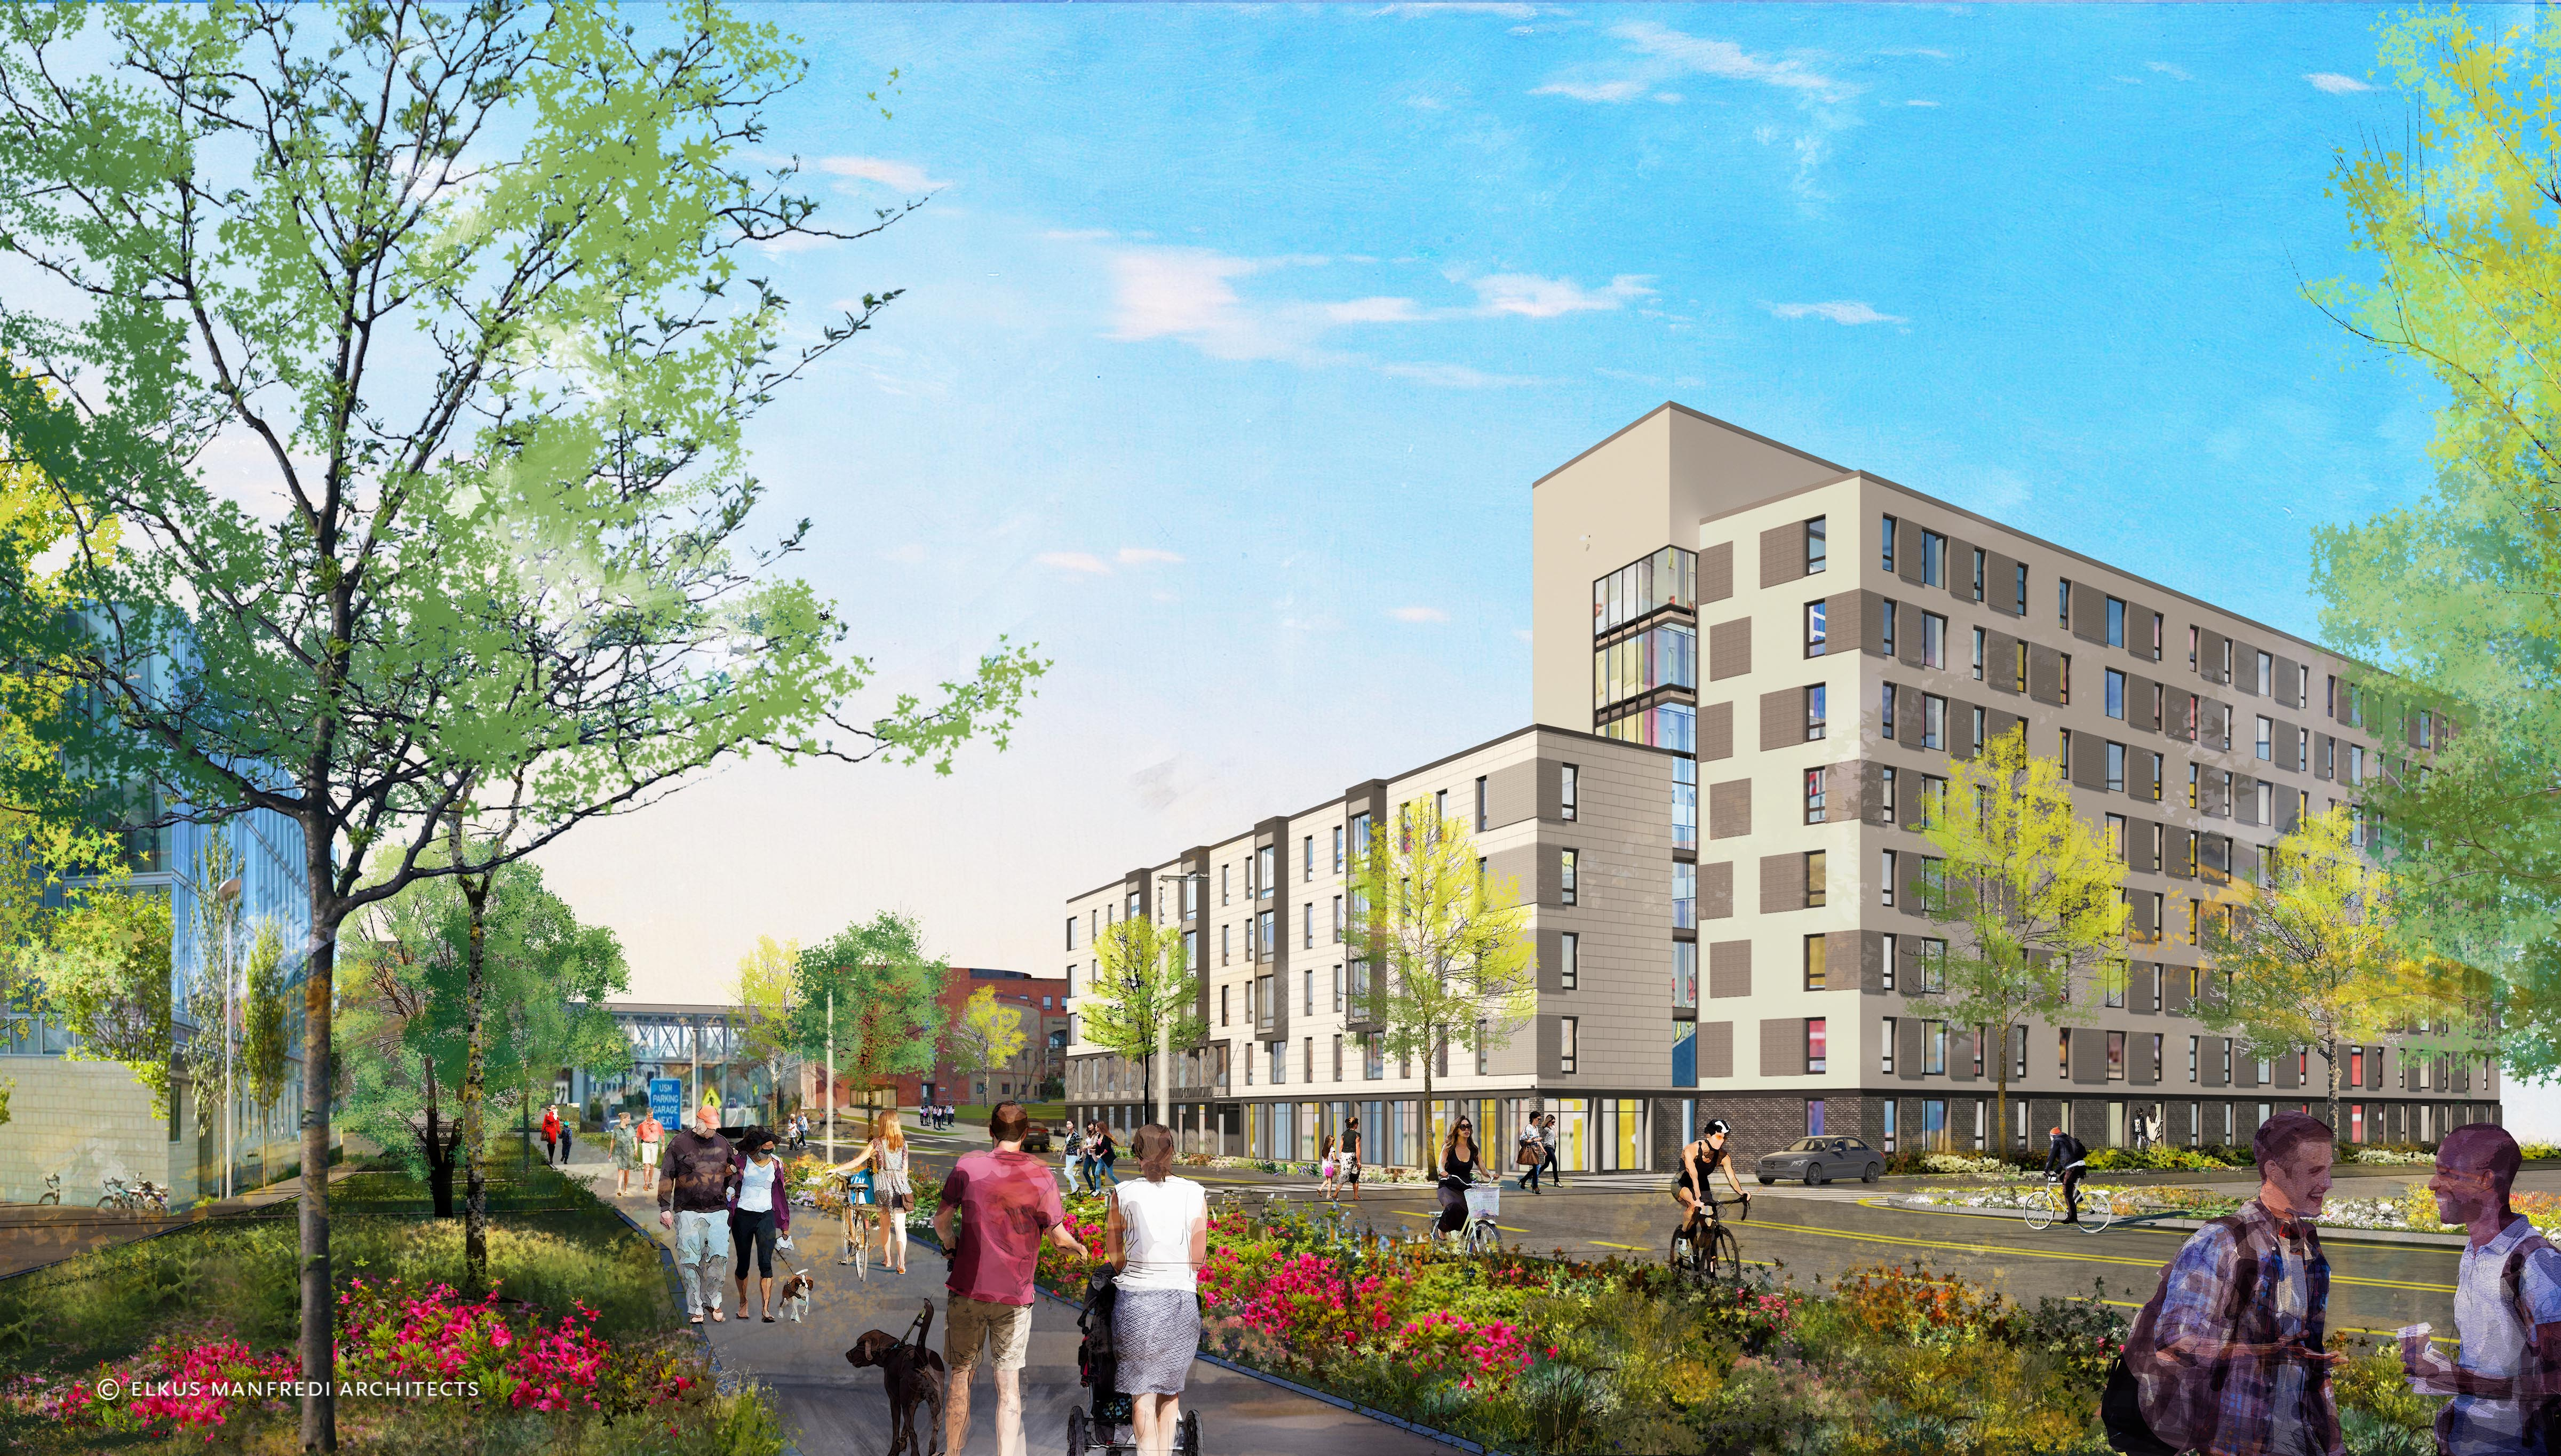 An architect's rendering of the Portland Commons residence hall